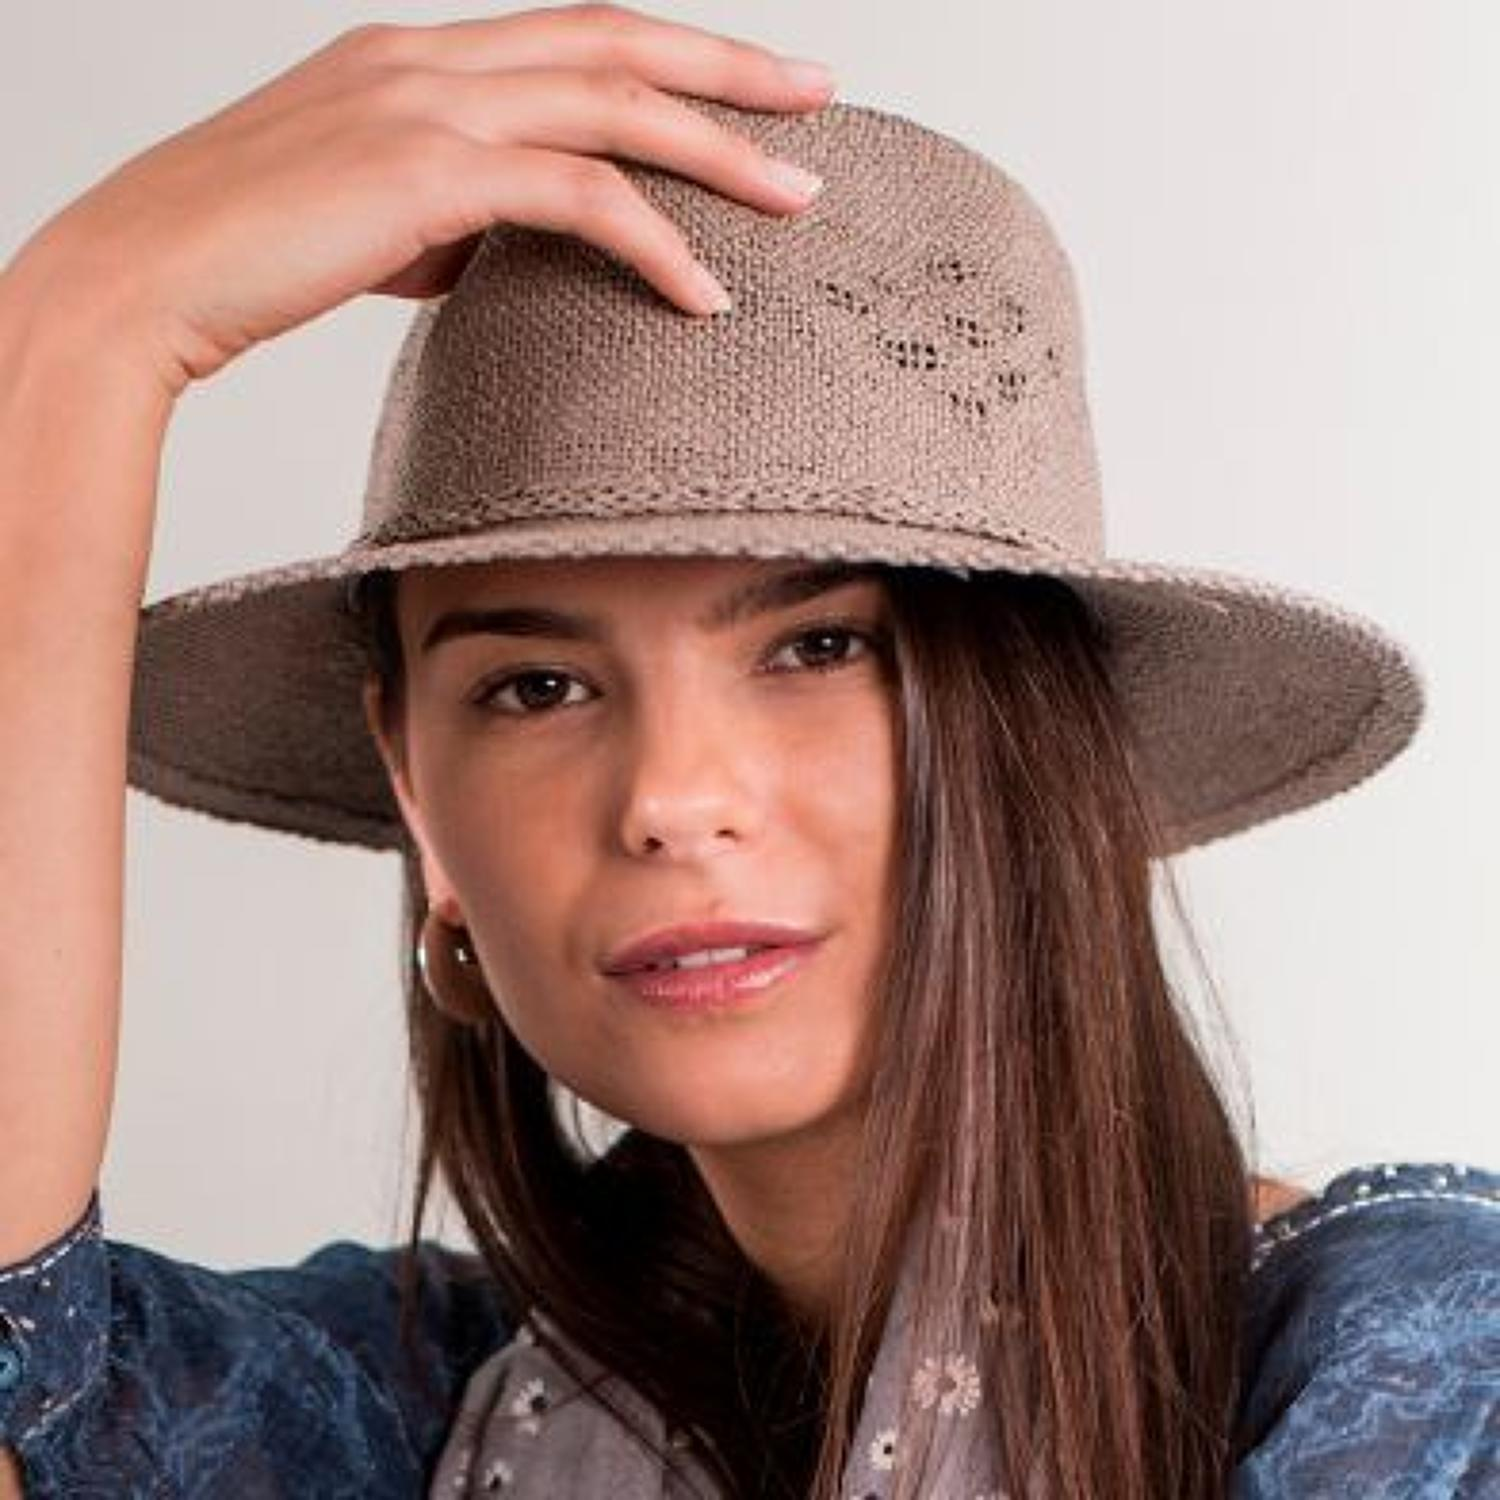 Taupe hat with woven detail